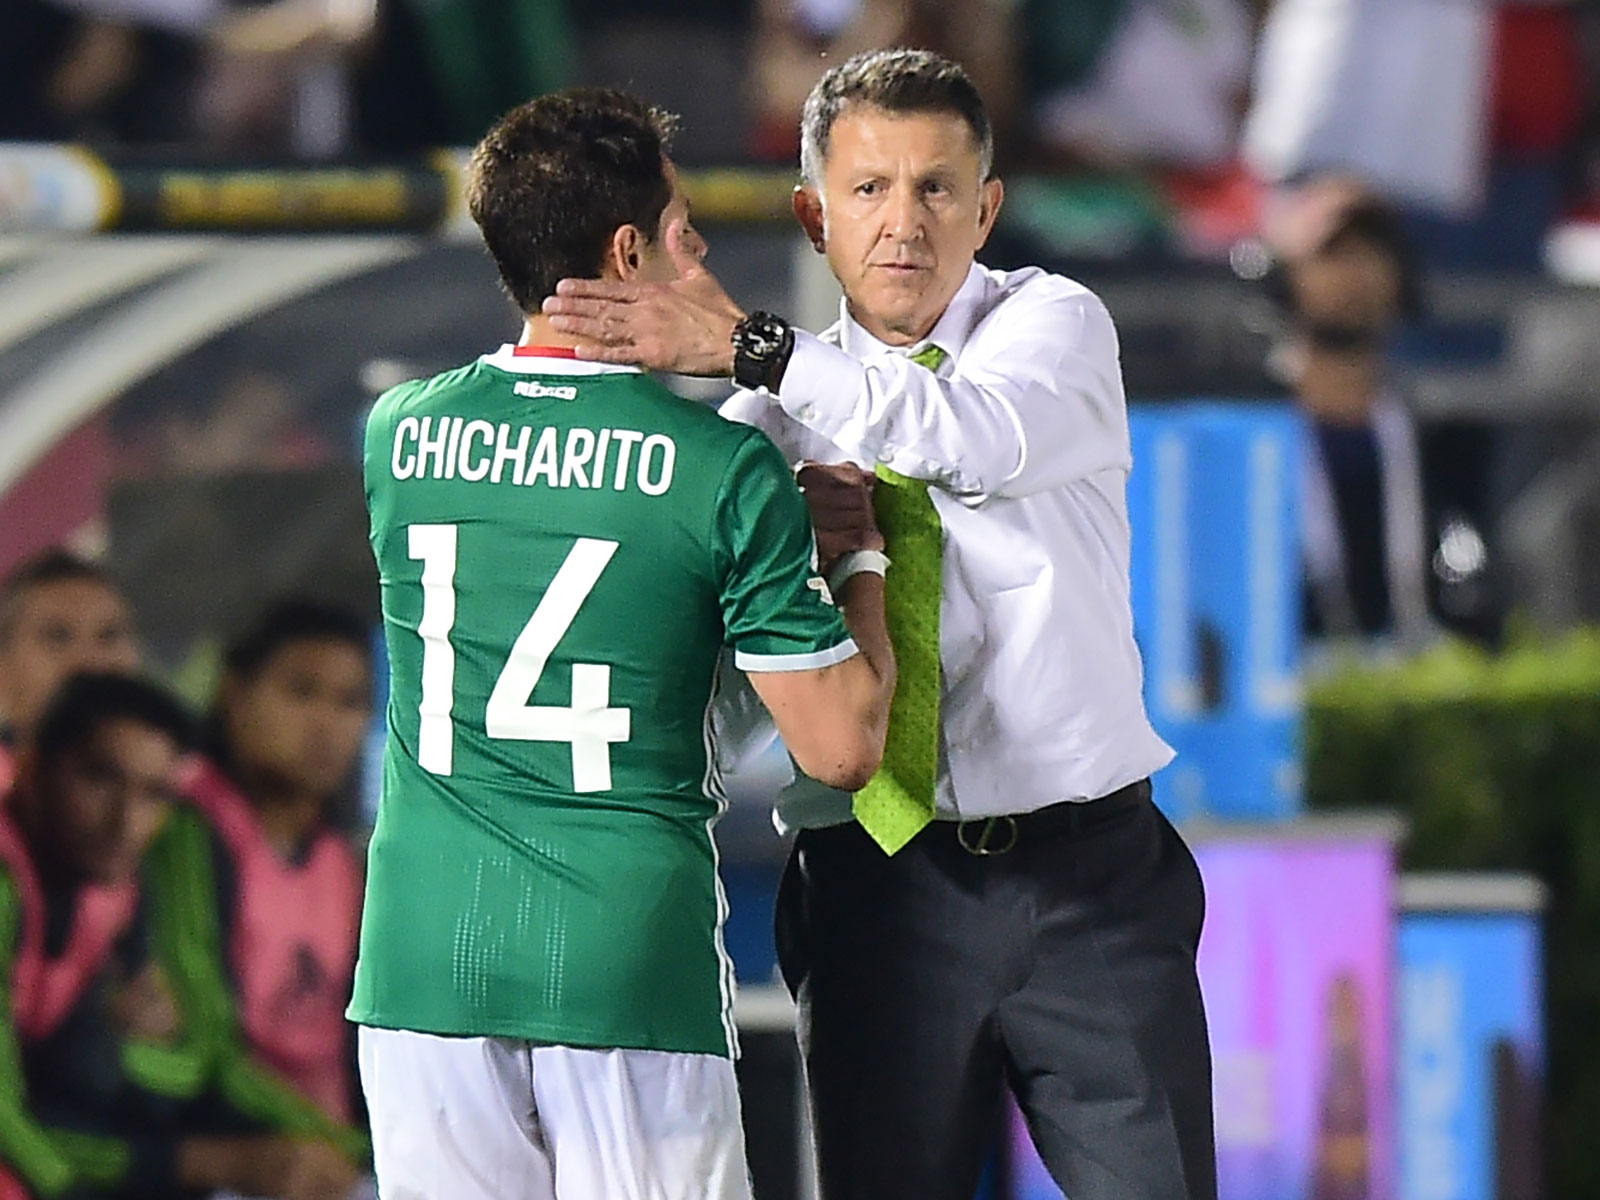 Chicharito and Juan Carlos Osorio lead Mexico at the World Cup